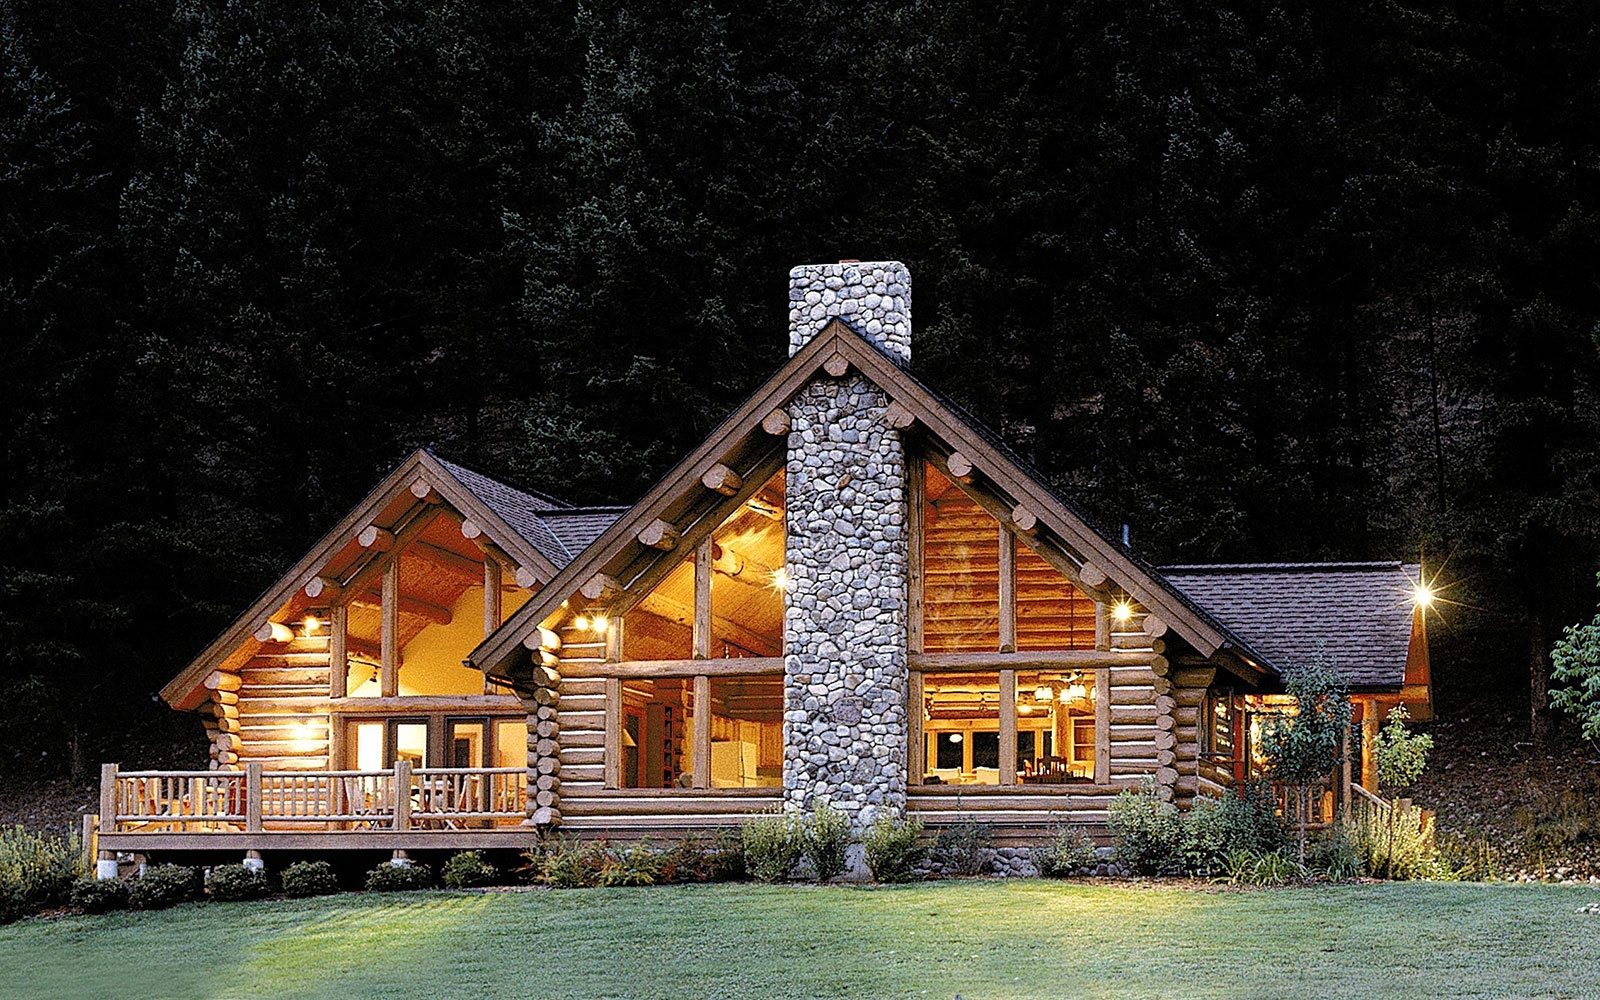 Montana: Triple Creek Ranch